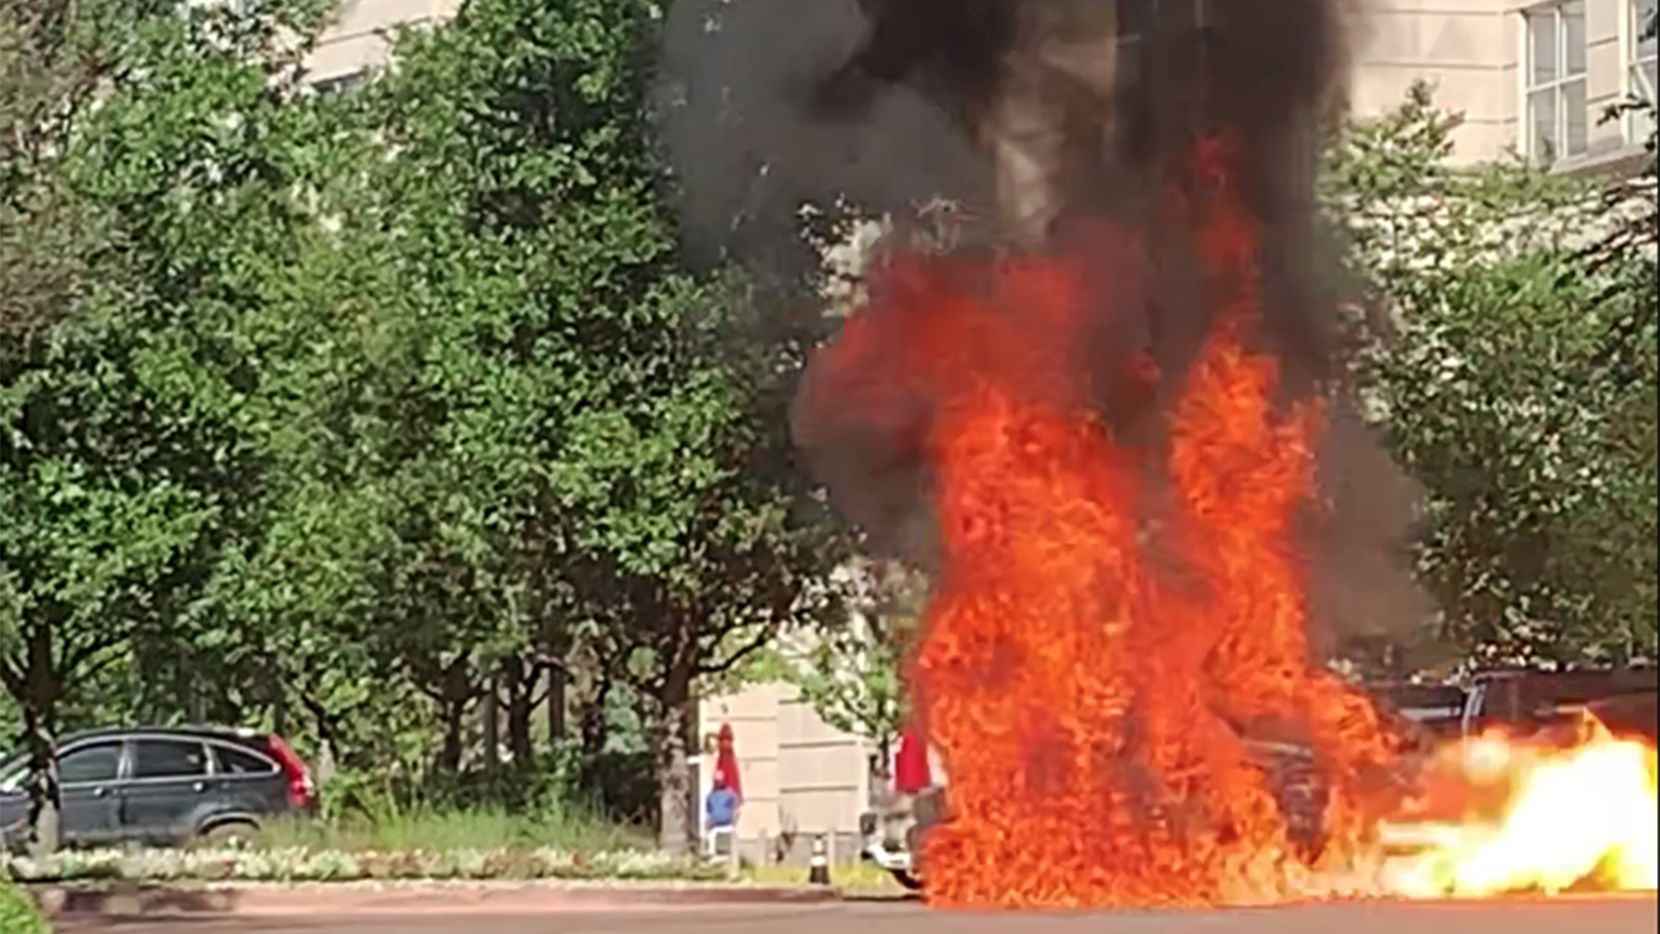 A car caught fire and exploded outside the Crescent complex Thursday in Uptown Dallas.